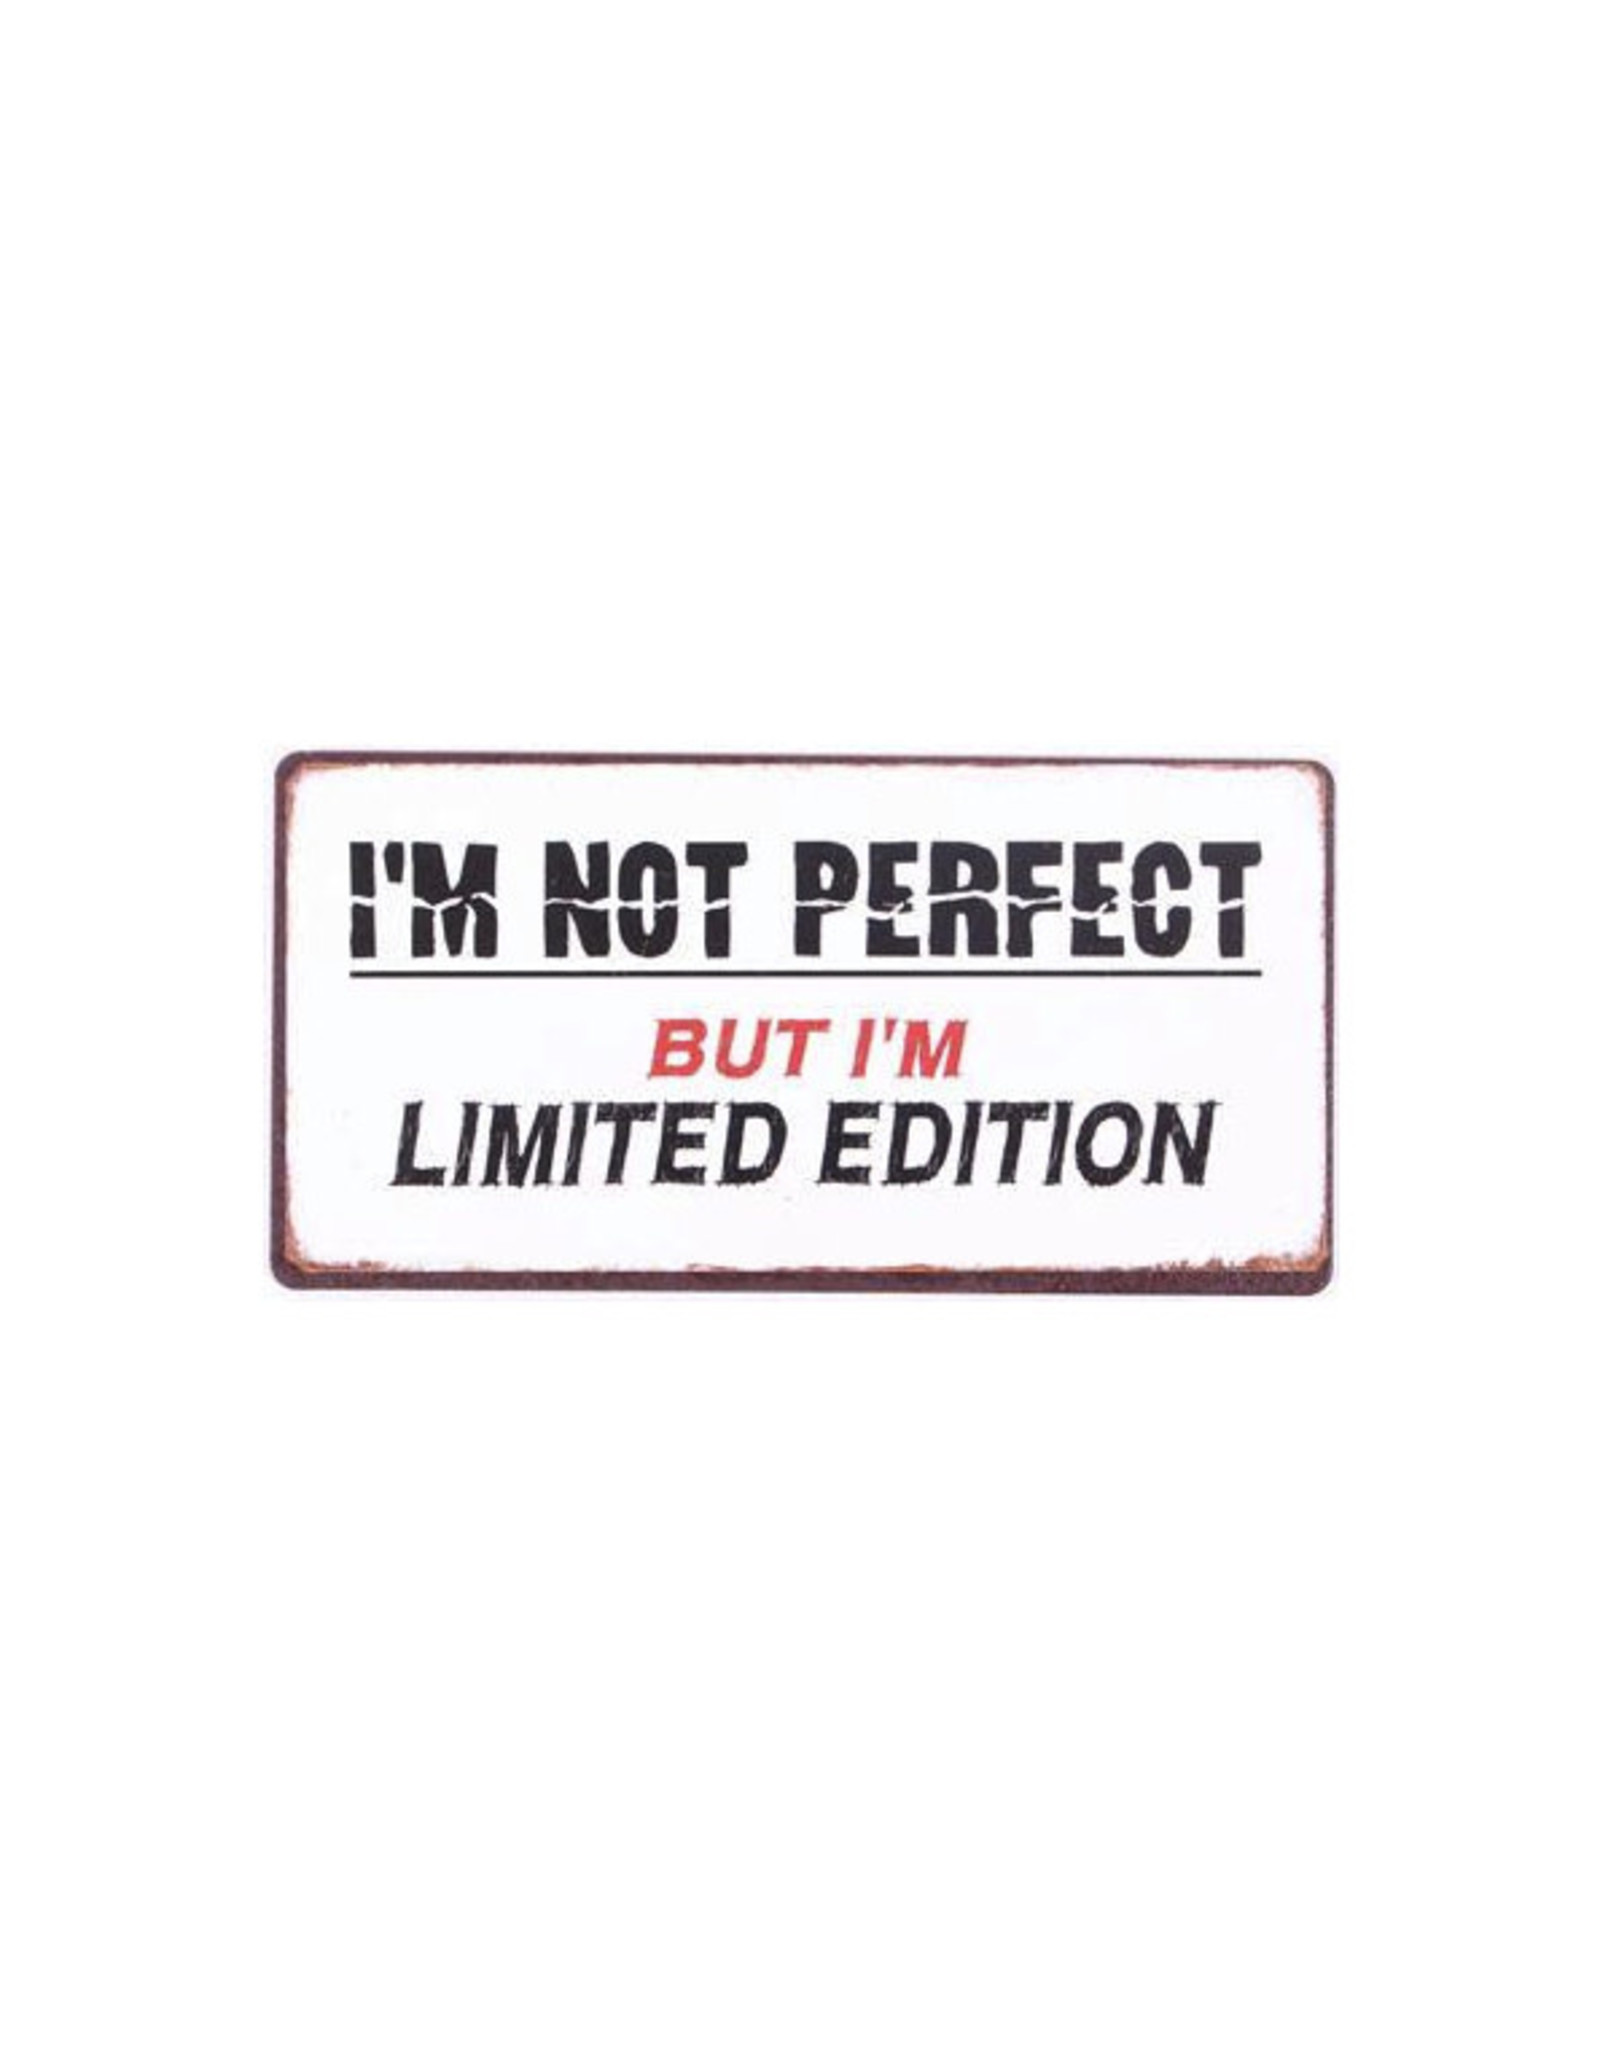 magnet with text: I'm not perfect but I'm limited...